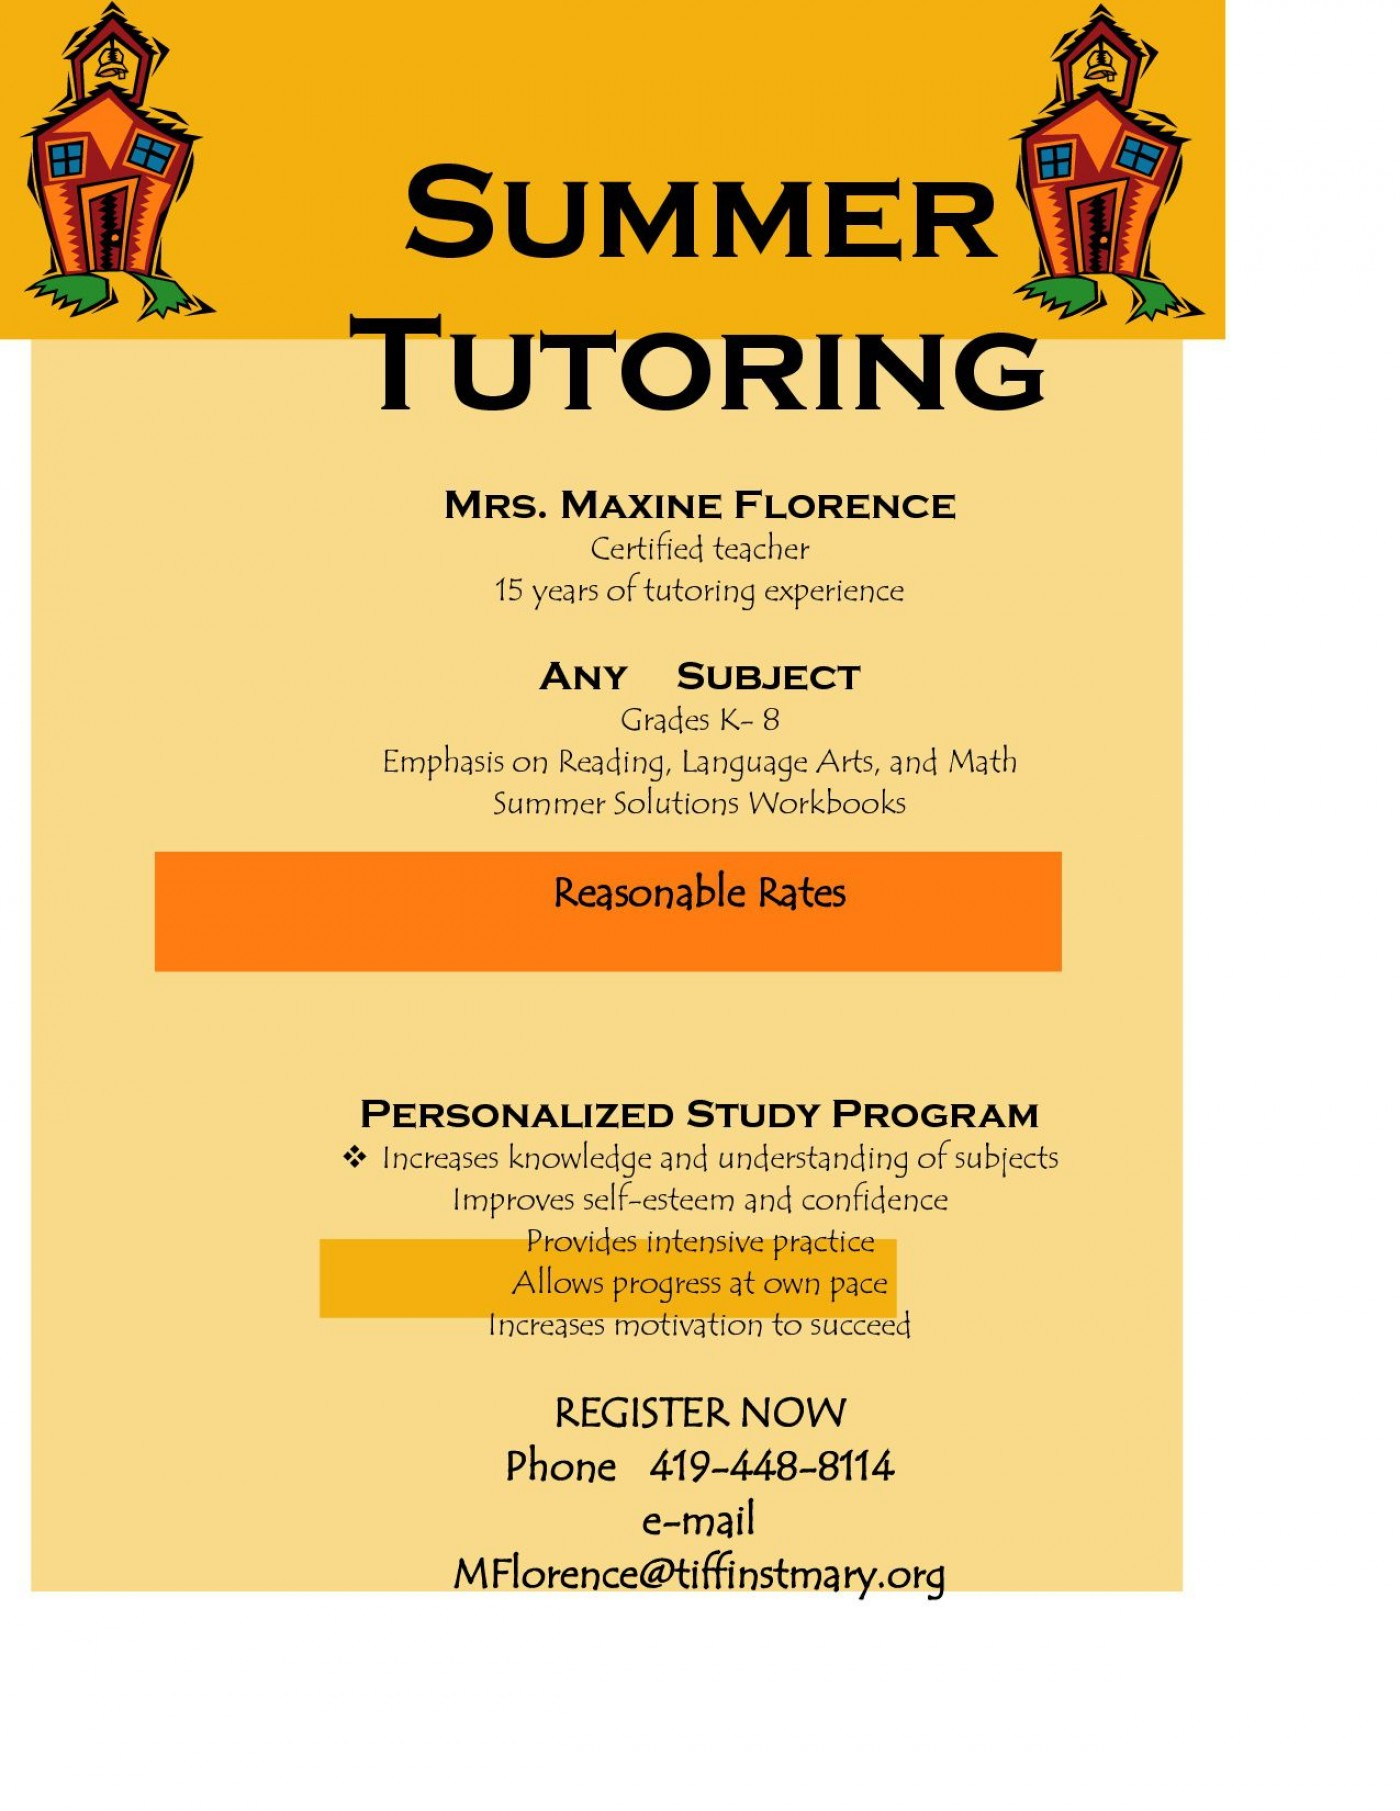 006 Excellent Tutoring Flyer Template Free Image  Word1400